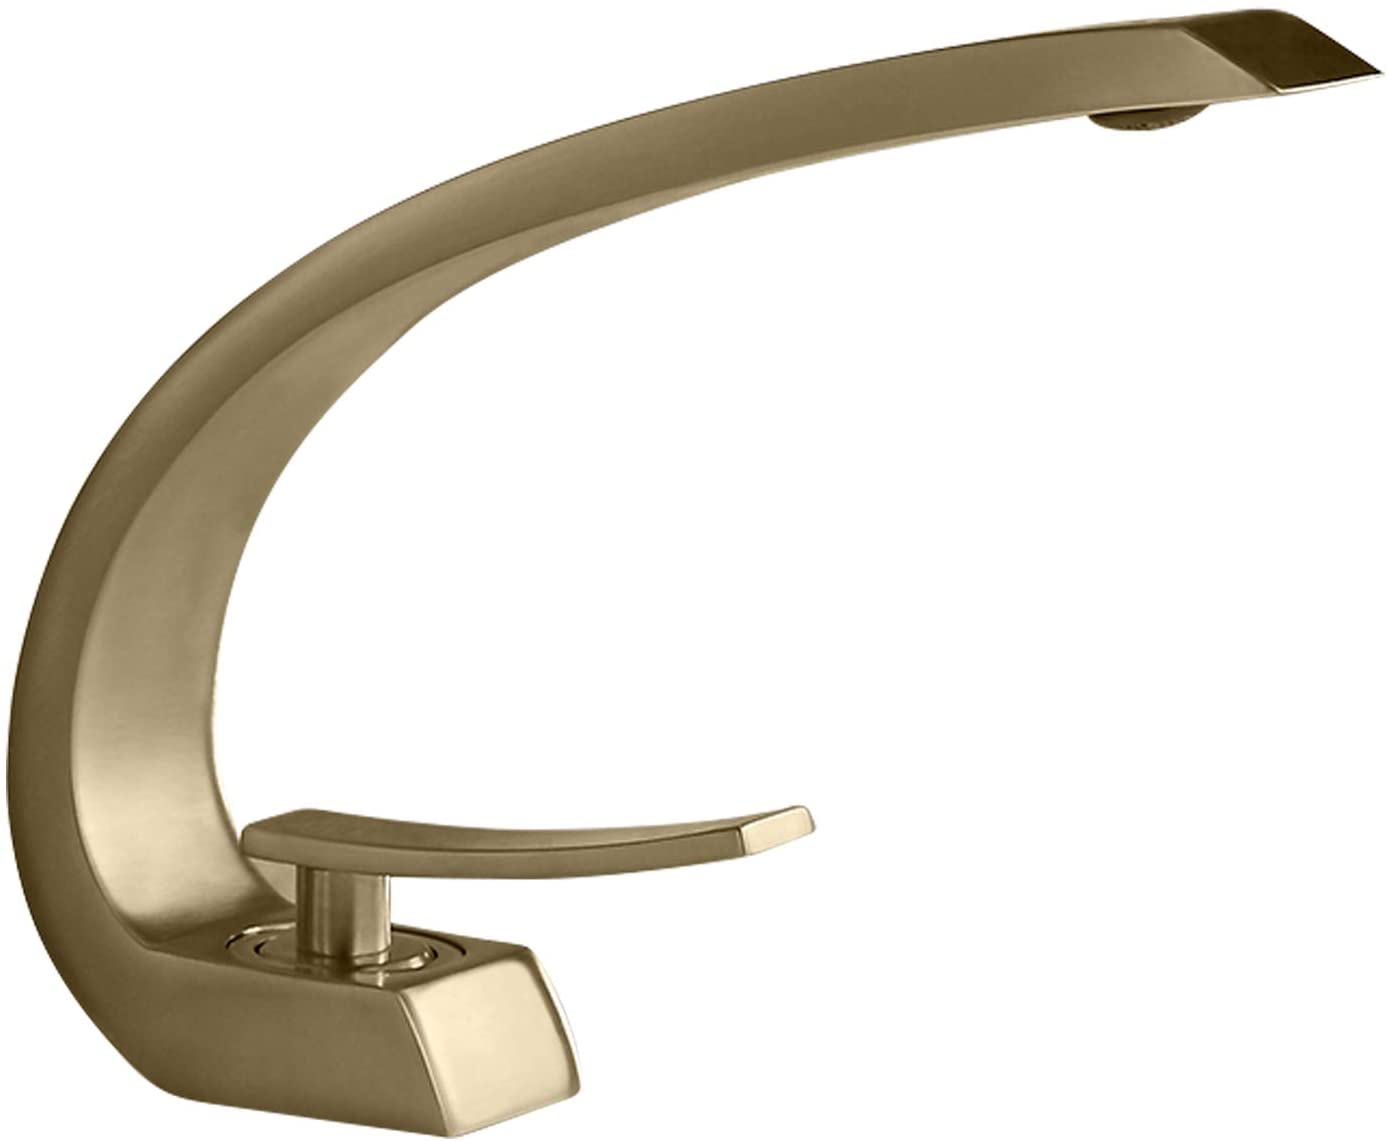 Homary 1 Handle Bathroom Sink Faucet With Pop Up Drain Cupc Certified Lead Free One Hole Deck Mount Curved Lavatory Faucet Mixer Solid Brass Brushed Gold Touch On Faucets Amazon Canada